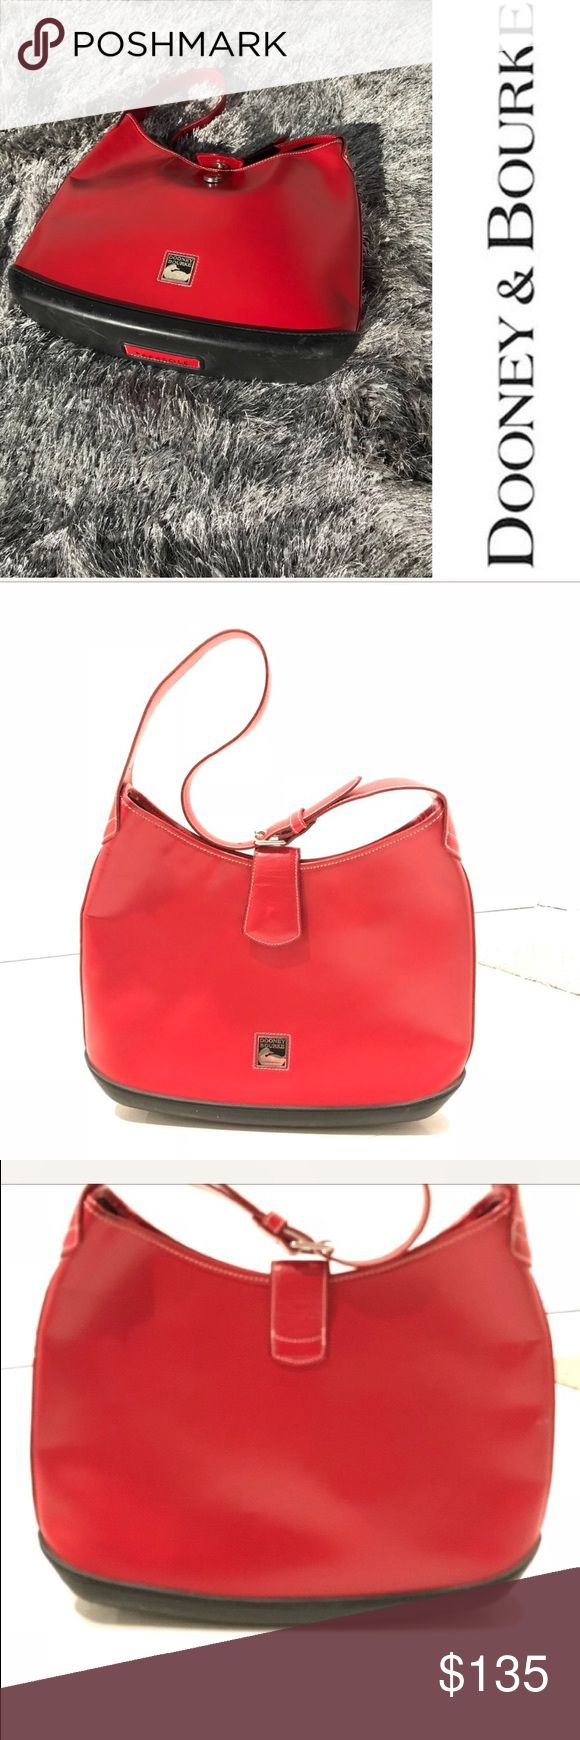 Red Dooney & Bourke handbag parasole Red dooney and Bourne parasole handbag  Almost flawless  I've shown the small dark marks on it and the tiny hole in the pictures   BUY 2 ITEMS GET 3rd HALF OFF , offering bundle discounts and accepting all reasonable offers Dooney & Bourke Bags Hobos